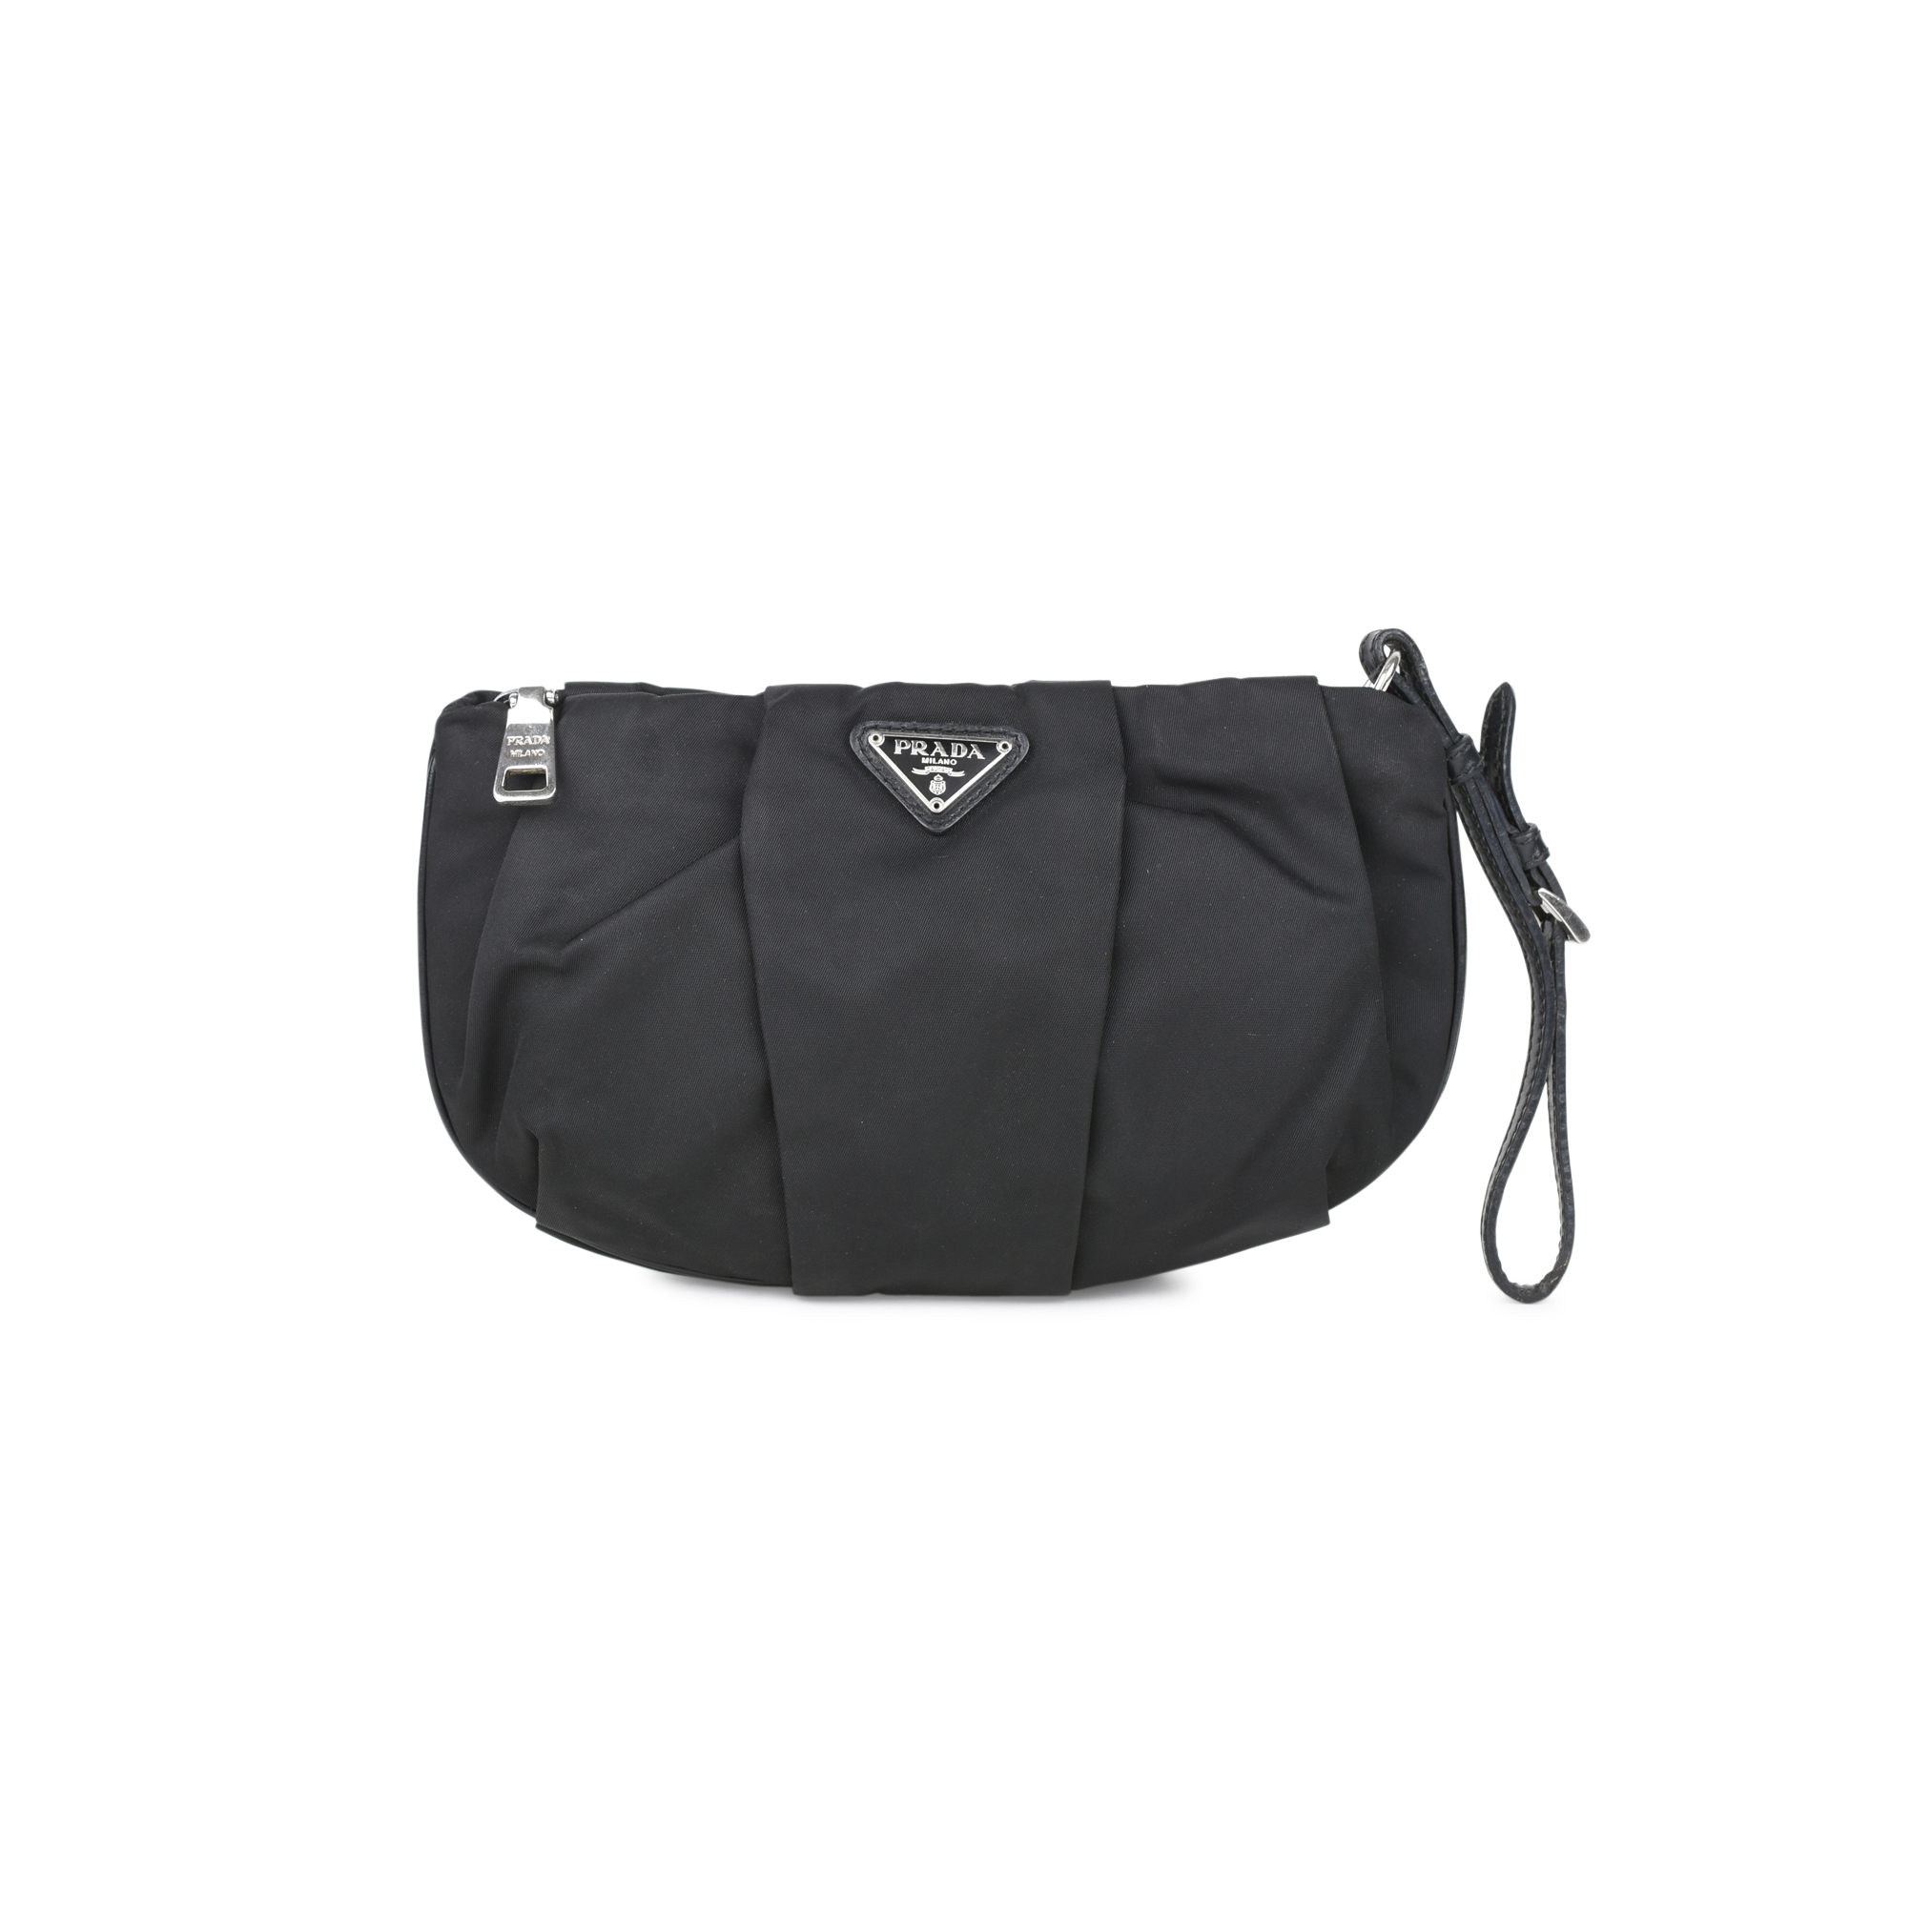 6b8f23dde0b0 Authentic Second Hand Prada Nylon Pouch (PSS-394-00030) | THE FIFTH  COLLECTION